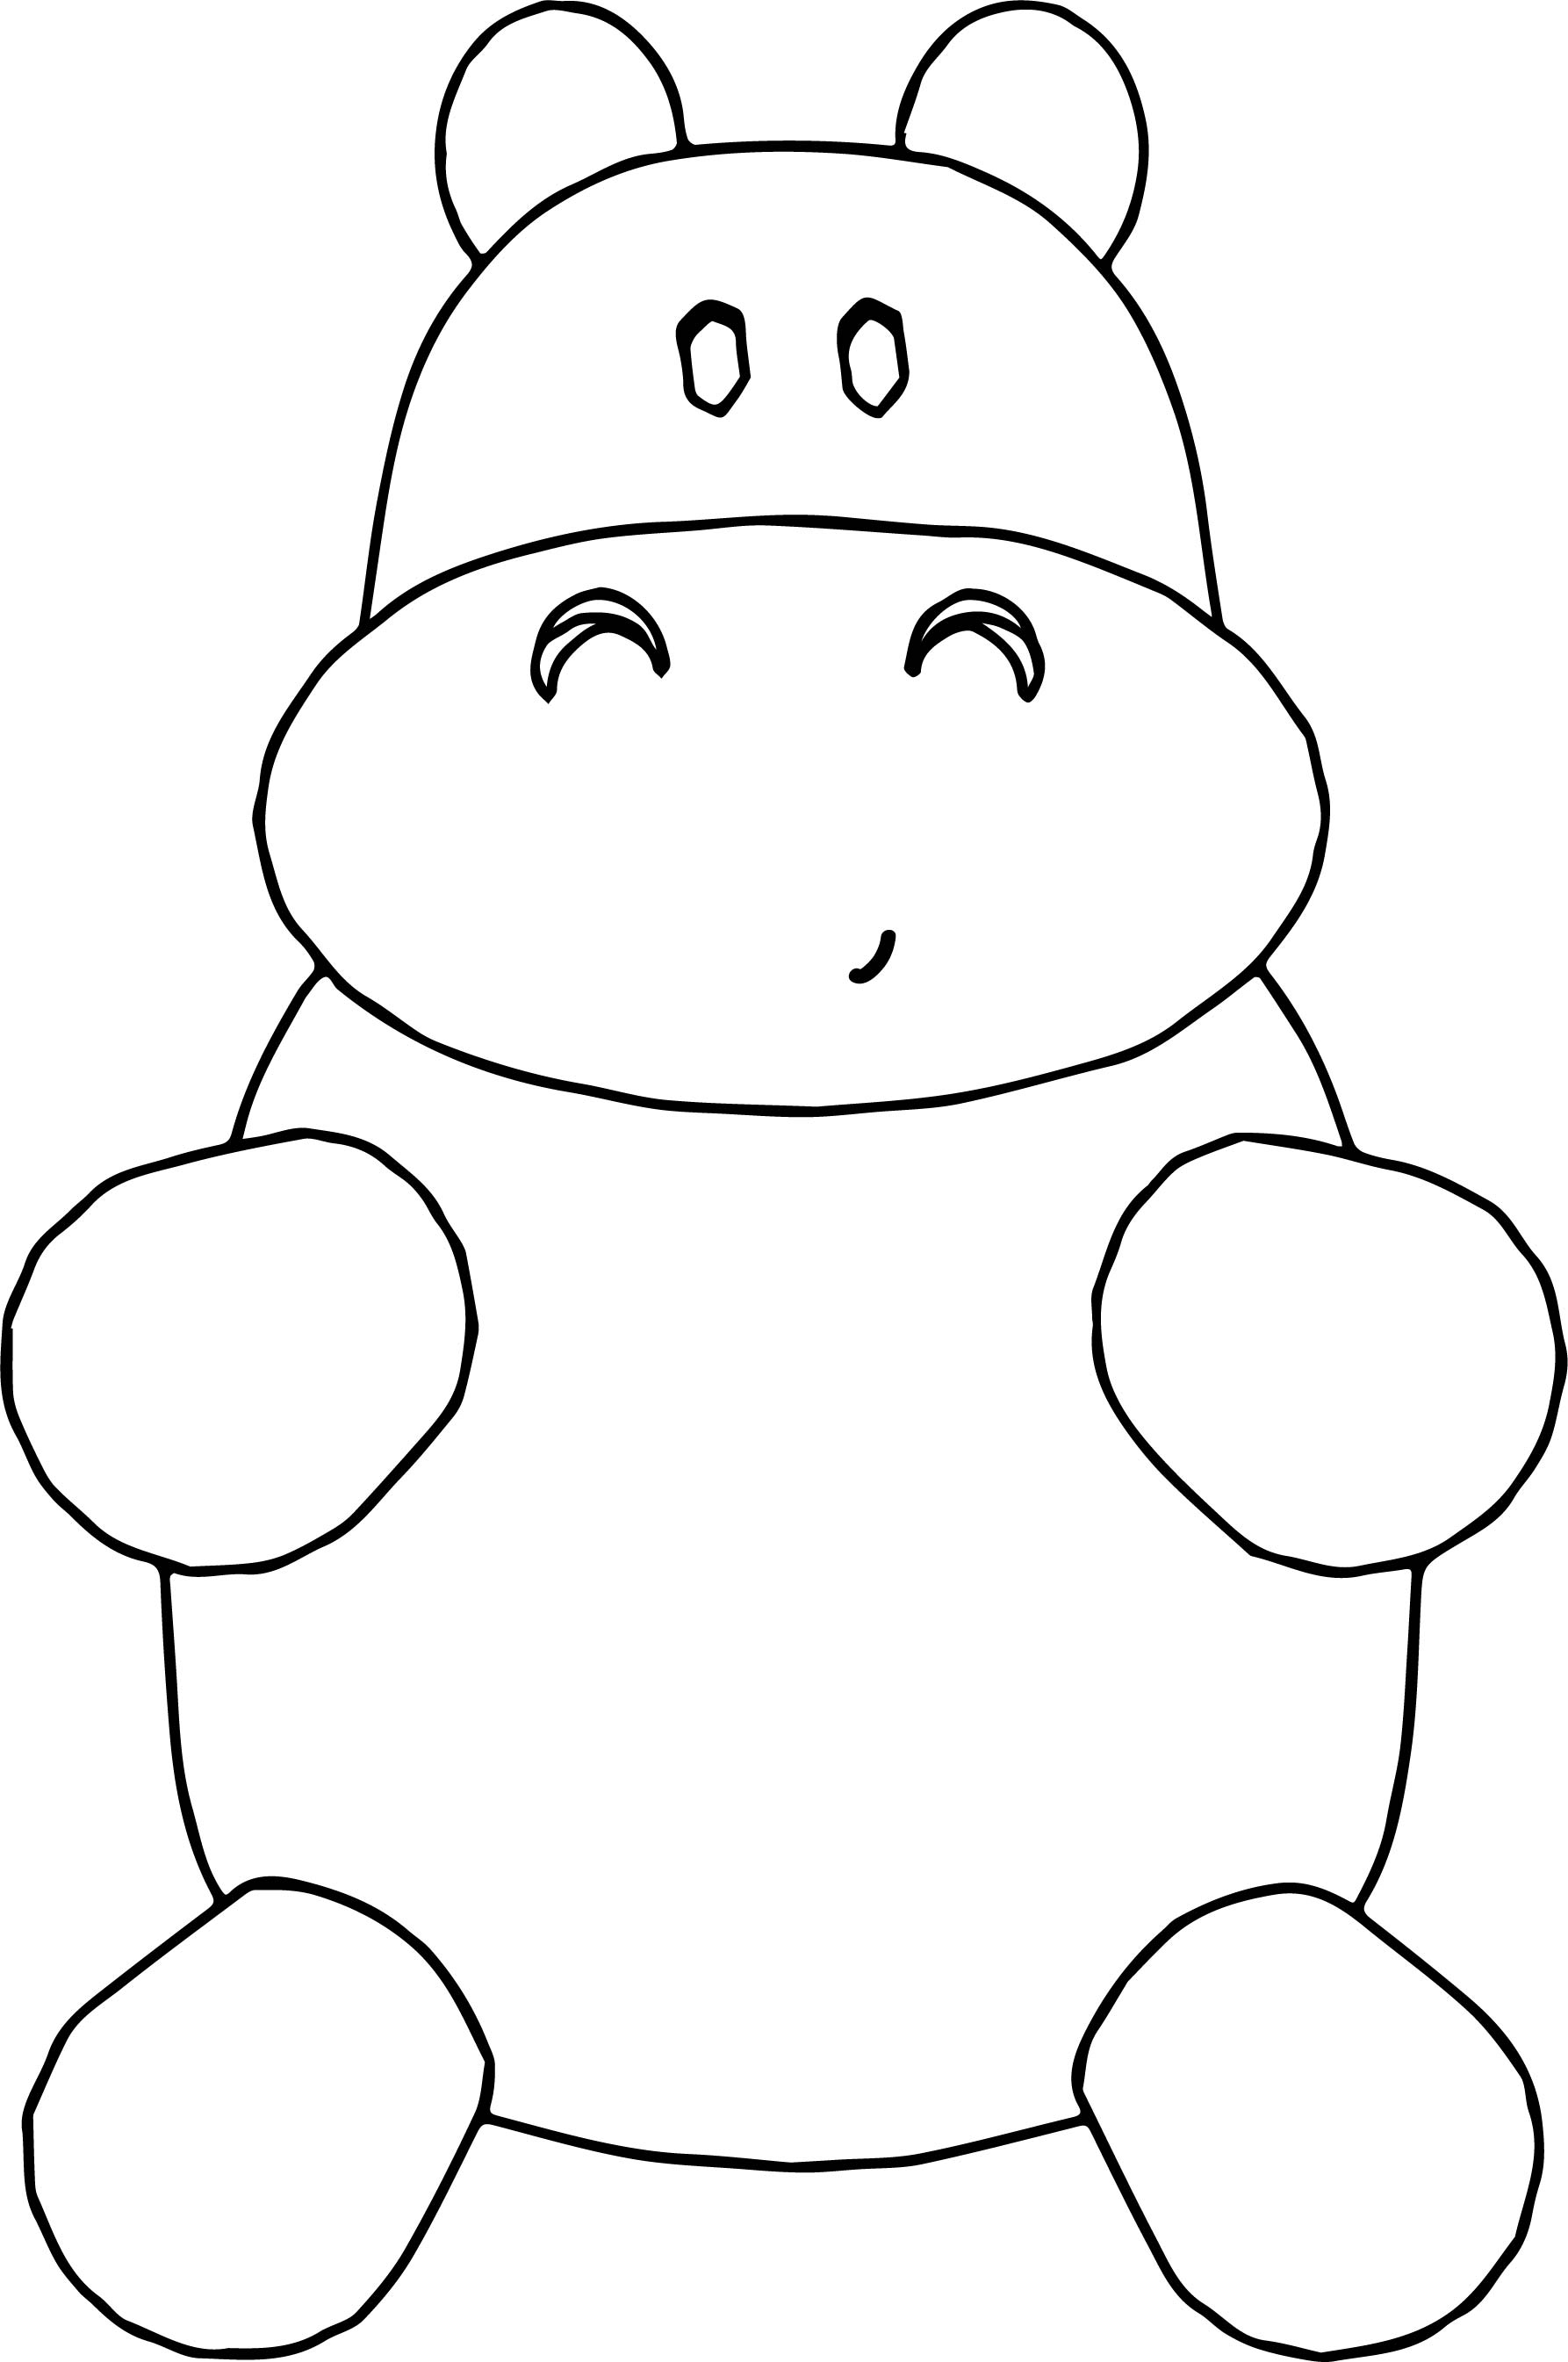 Cow Toy Coloring Page Sweet Cute Pretty Beauty Best Perfect Time